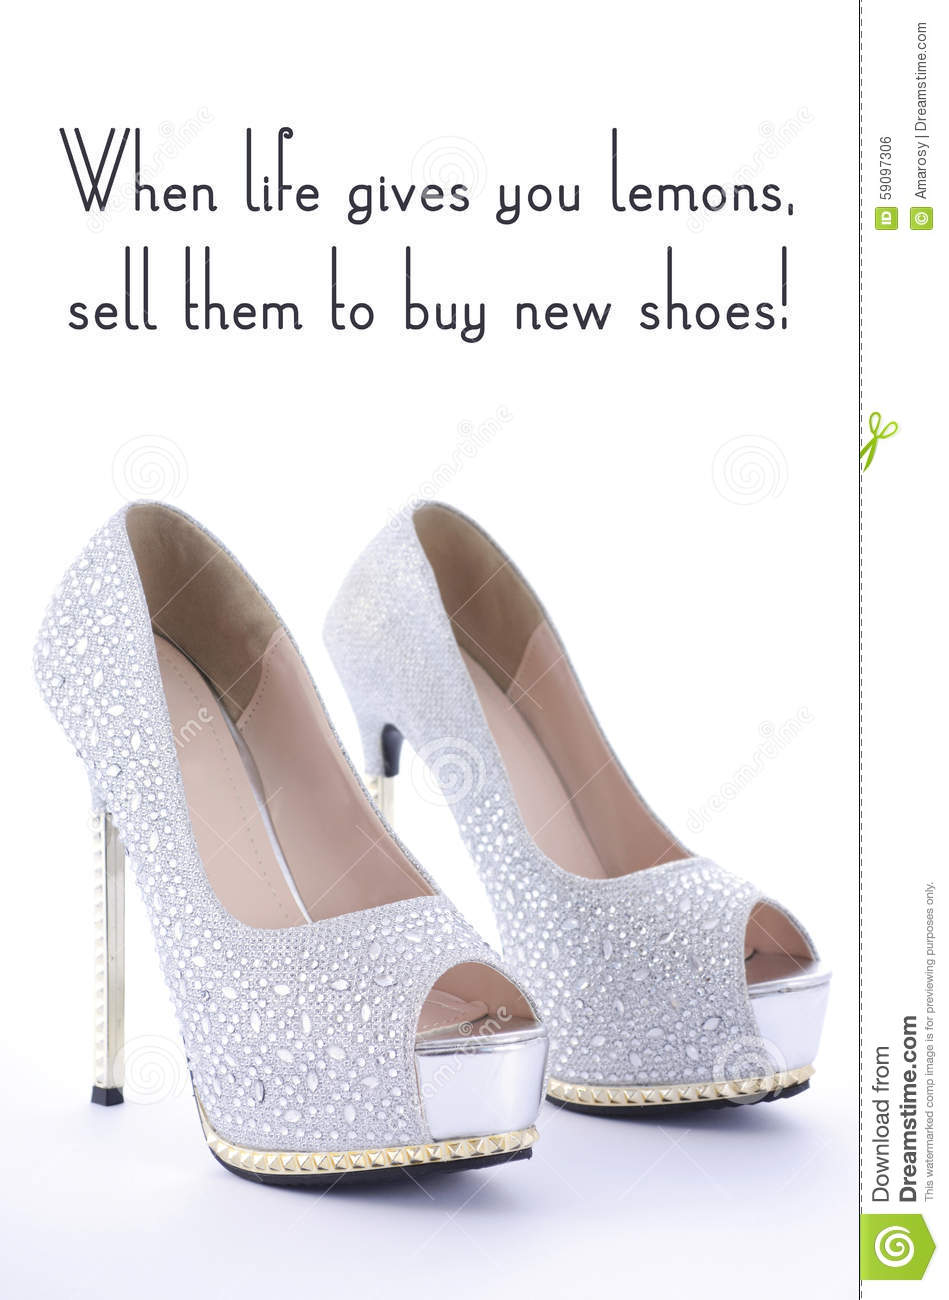 High Heel Rhinestone Shoes With Funny Saying Text Stock Photo Image Of Heels Fashion 59097306